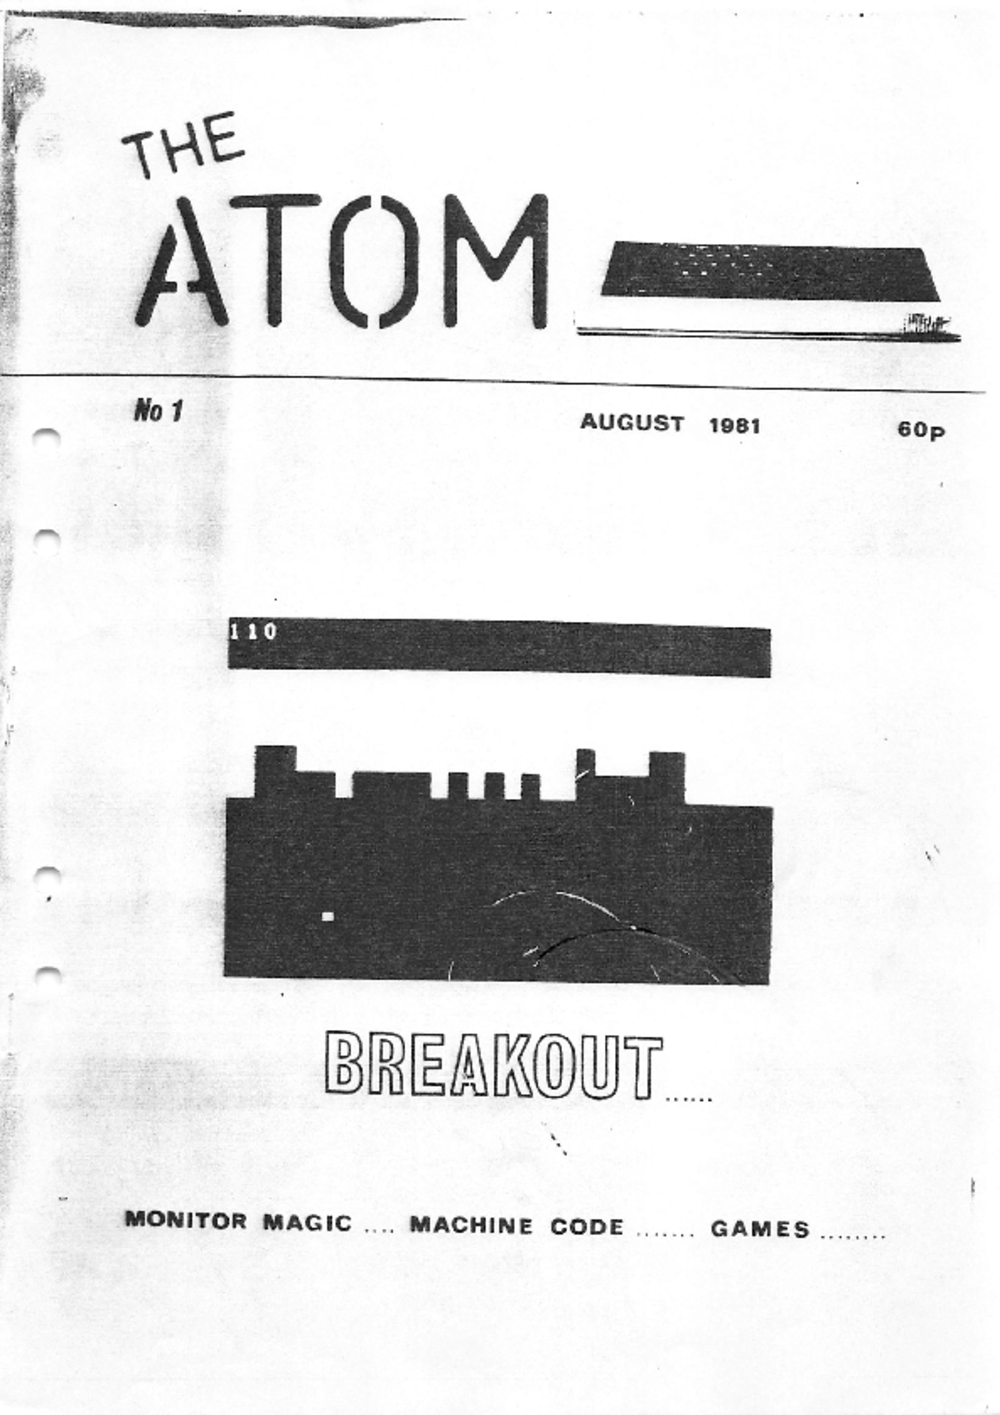 Article: The Atom - August 1981 - No 1